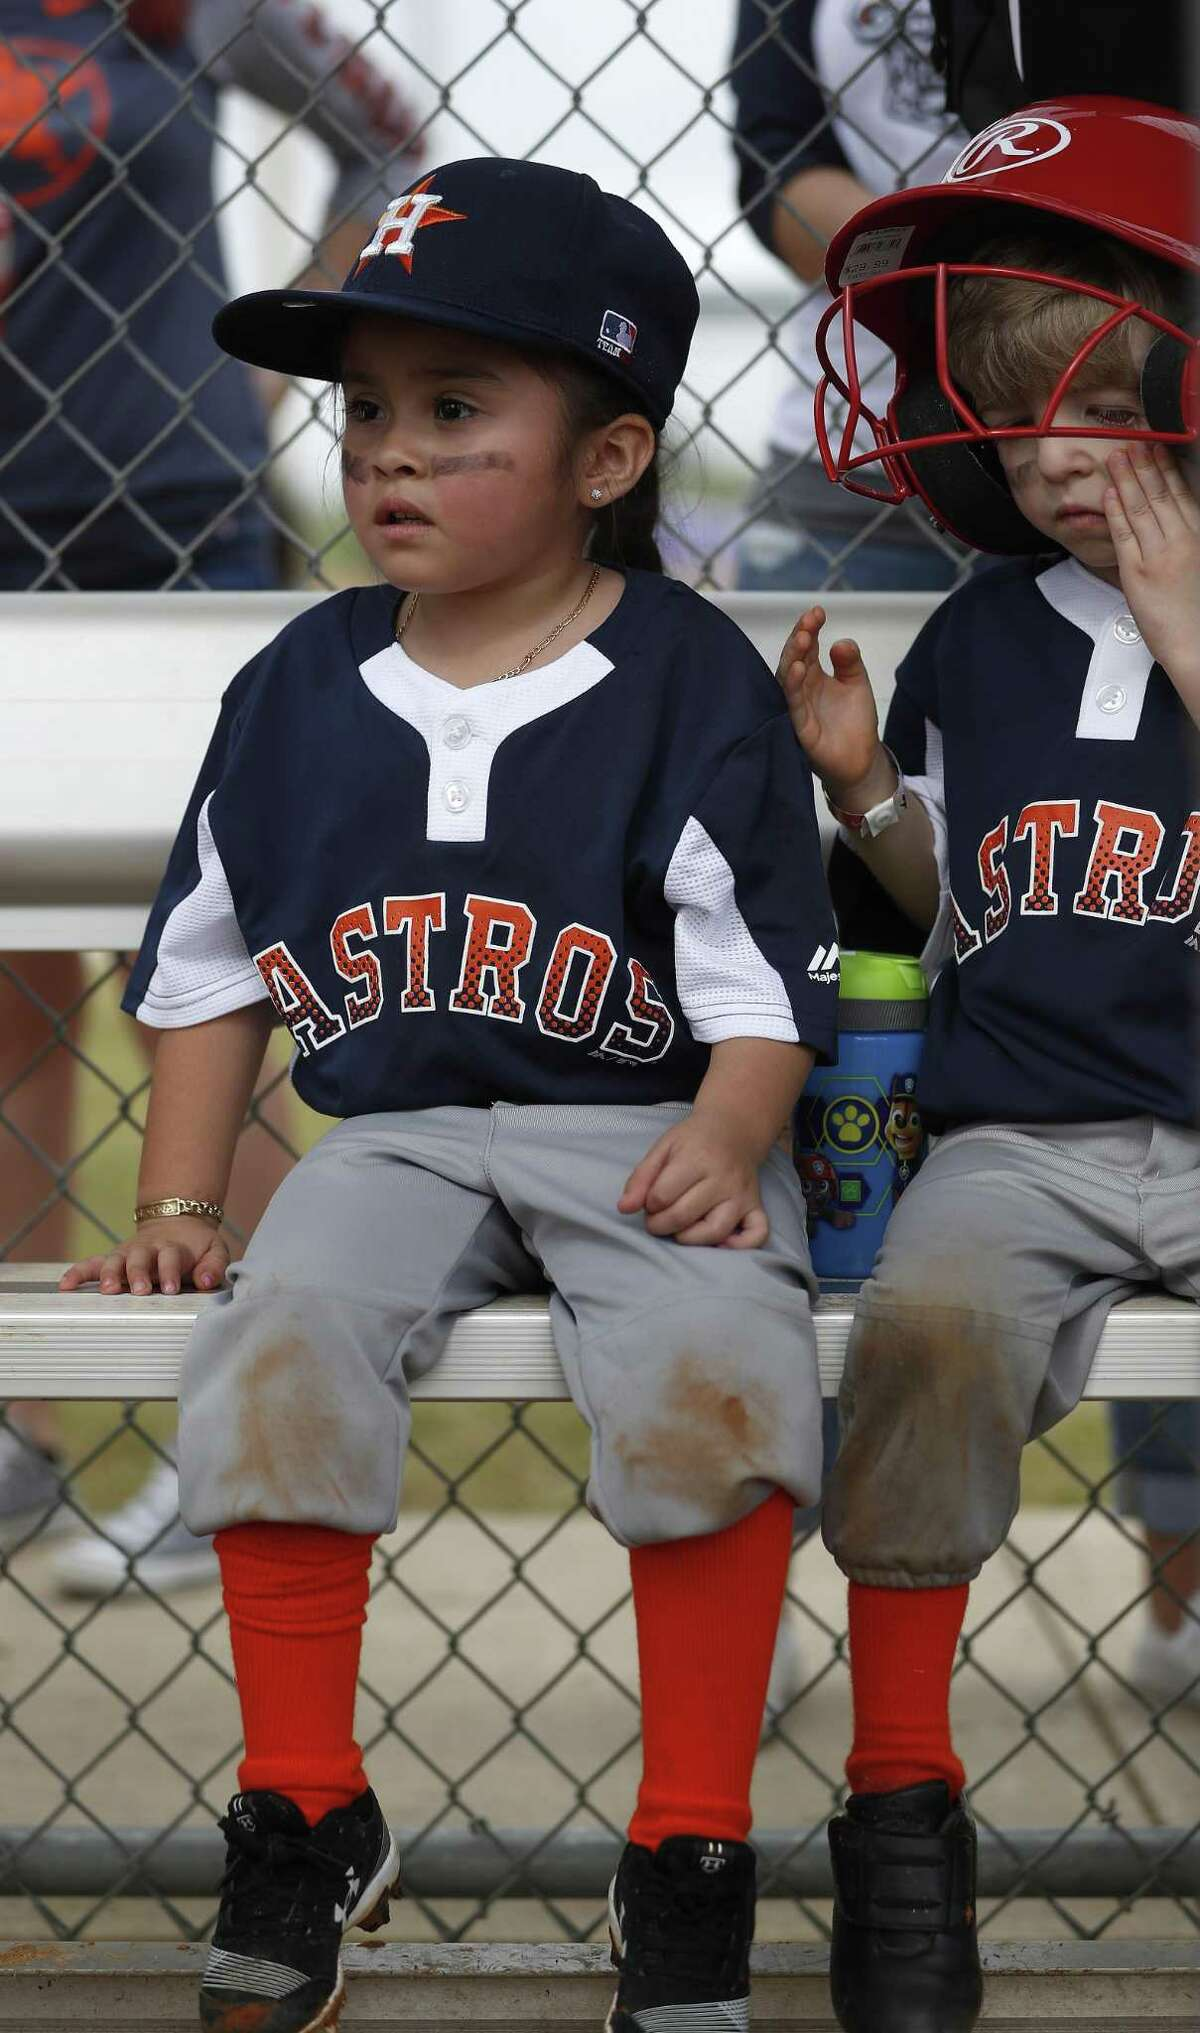 Alayna Montalbo, 4, waits her turn to bat in the dugout during Deer Park PONY baseball games at Spencerview Athletic Complex, Saturday, March 30, 2019, in Deer Park. First the Deer Park PONY baseball league had to cancel games because of bad weather. Then came the ITC chemical fire, which cancelled another full week of games and Opening Day.